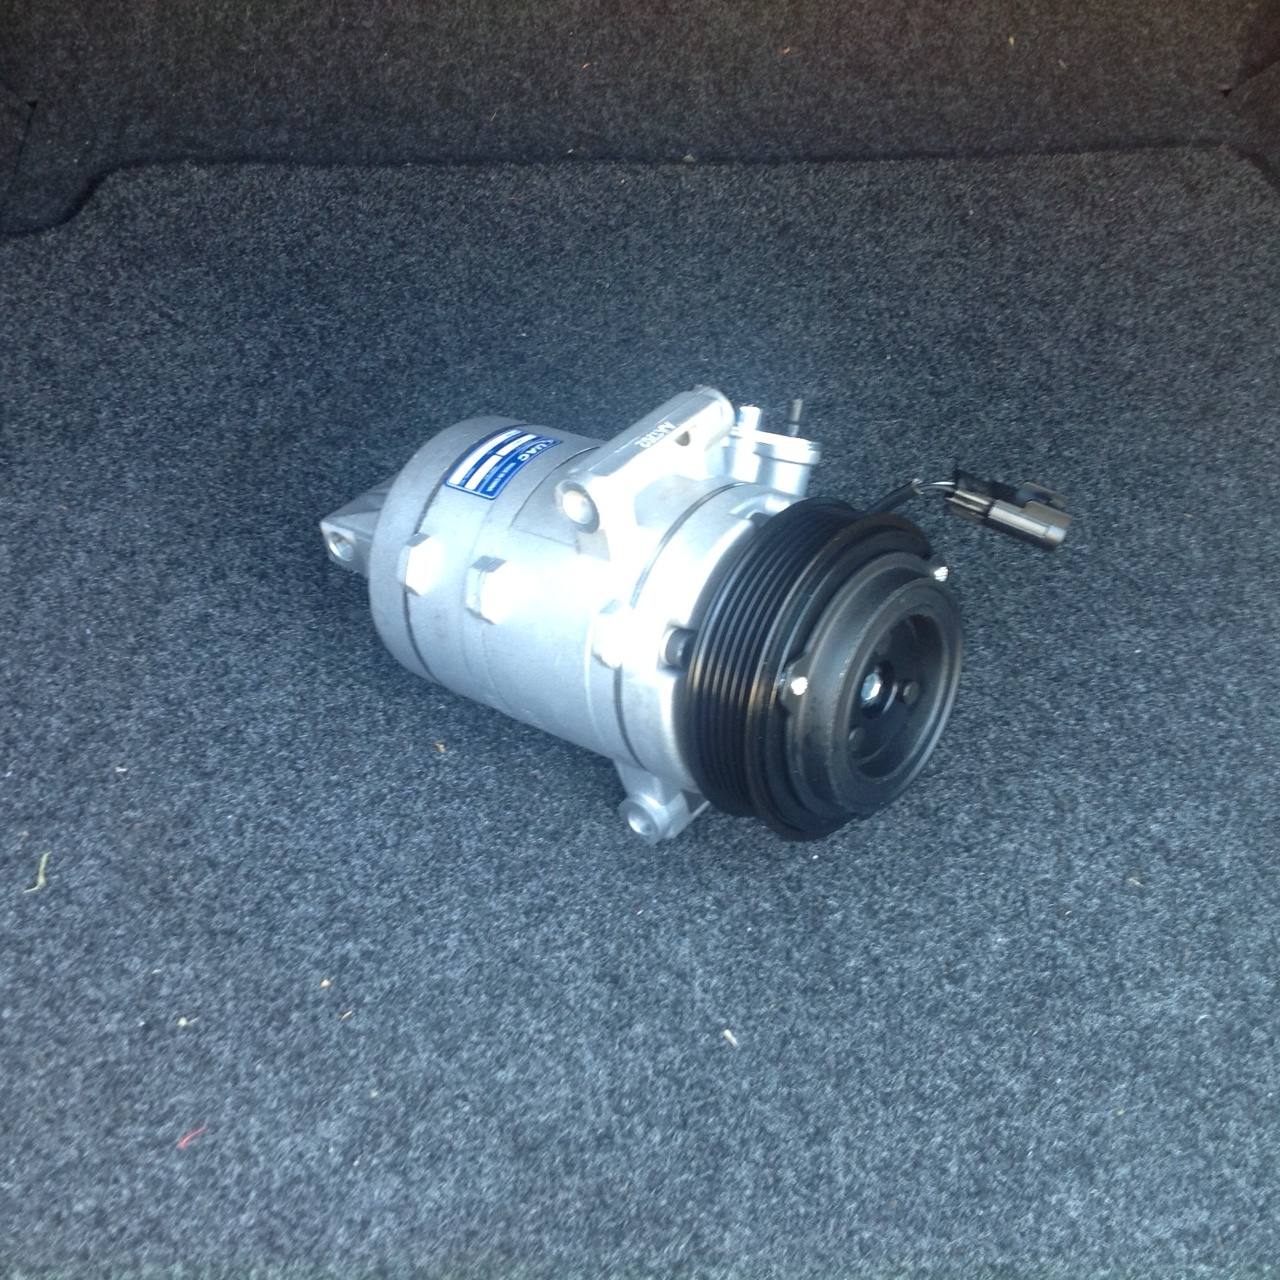 2010-2012 Ford Fusion 3.5 Auto AC Air Conditioning Compressor Repair Part Kit